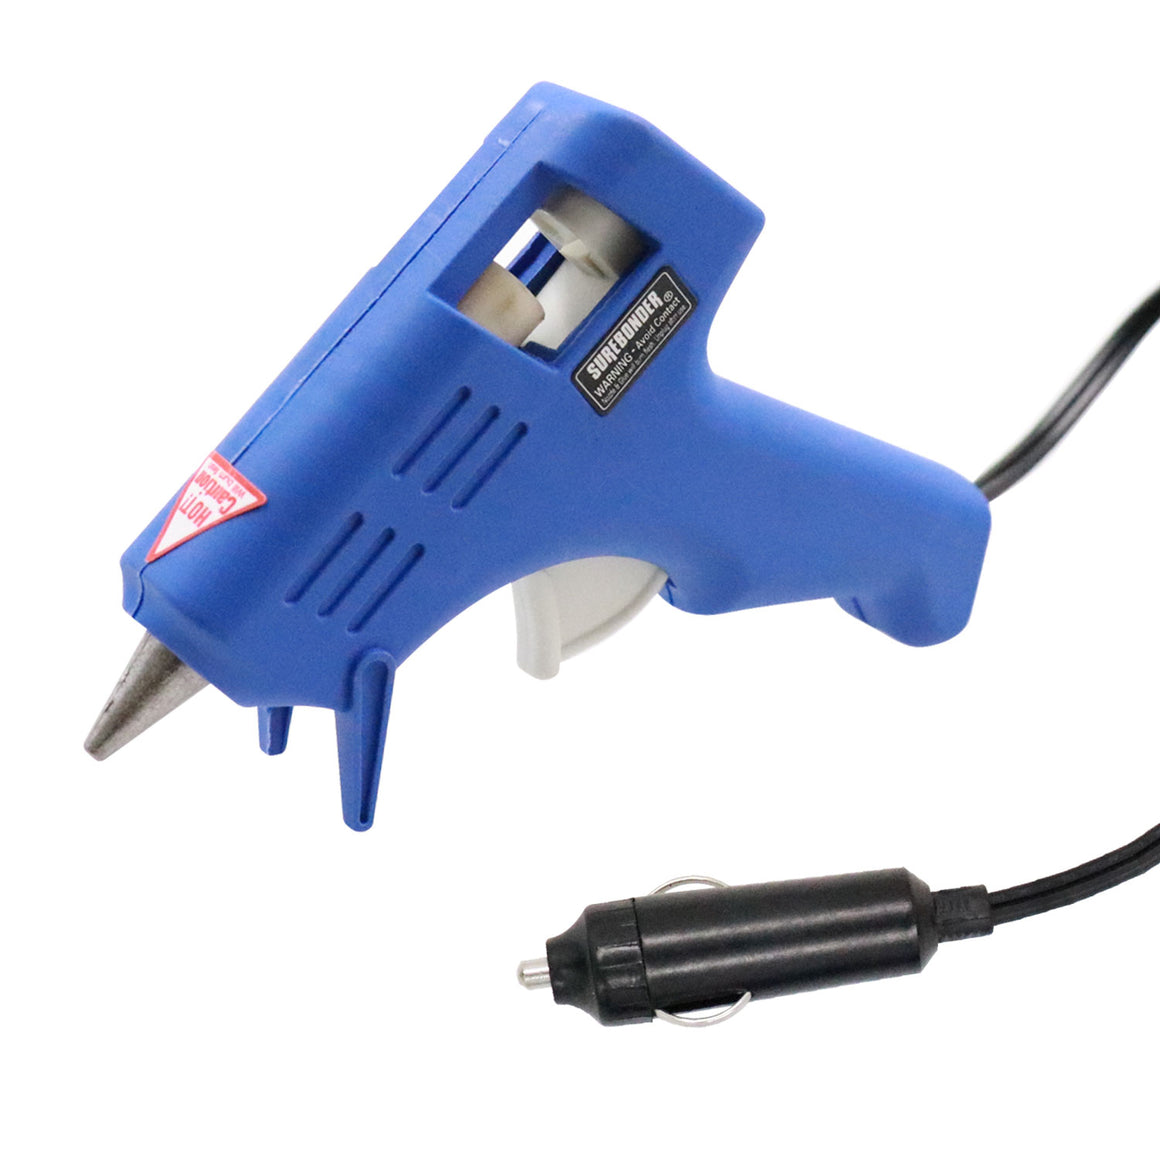 10 Watt Mini Size High Temperature Hot Glue Gun - Car Edition